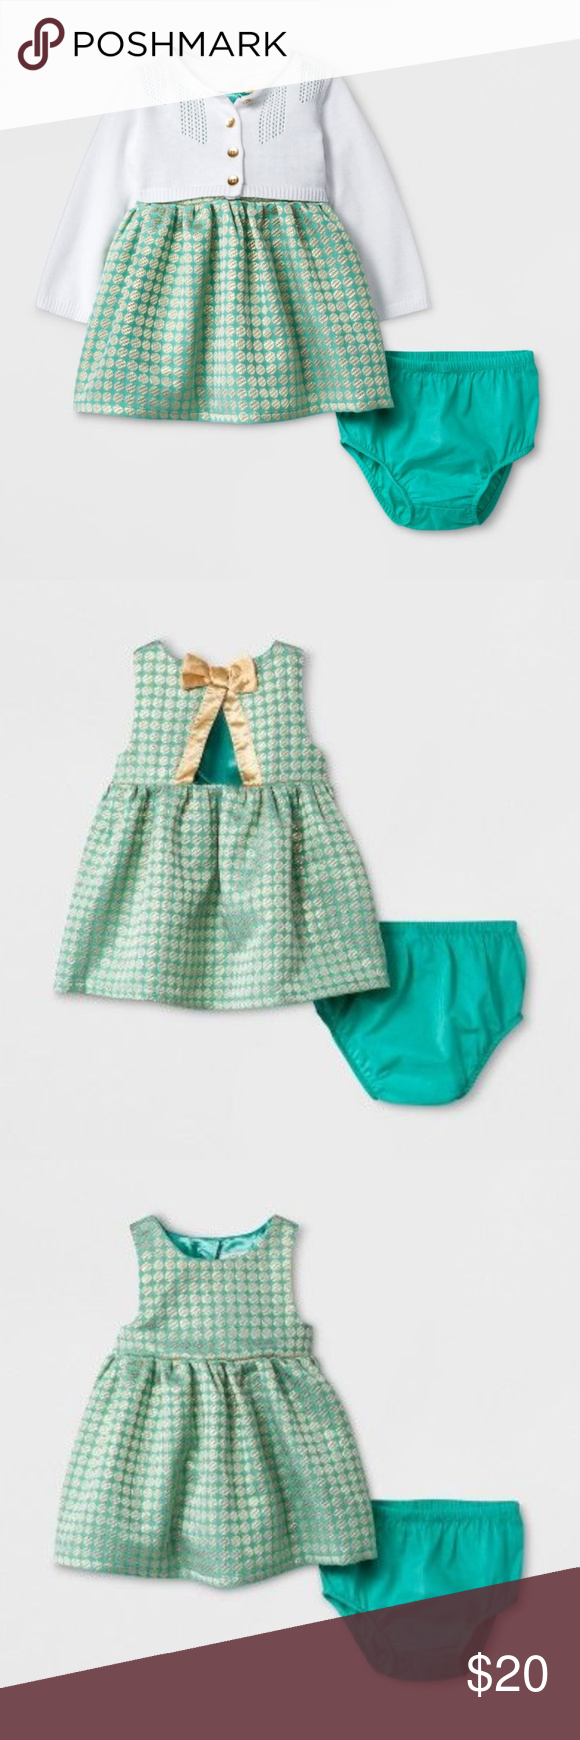 Green dress baby images  New Baby Girl Sweater u Dress Set Party Clothes NWT  Pinterest